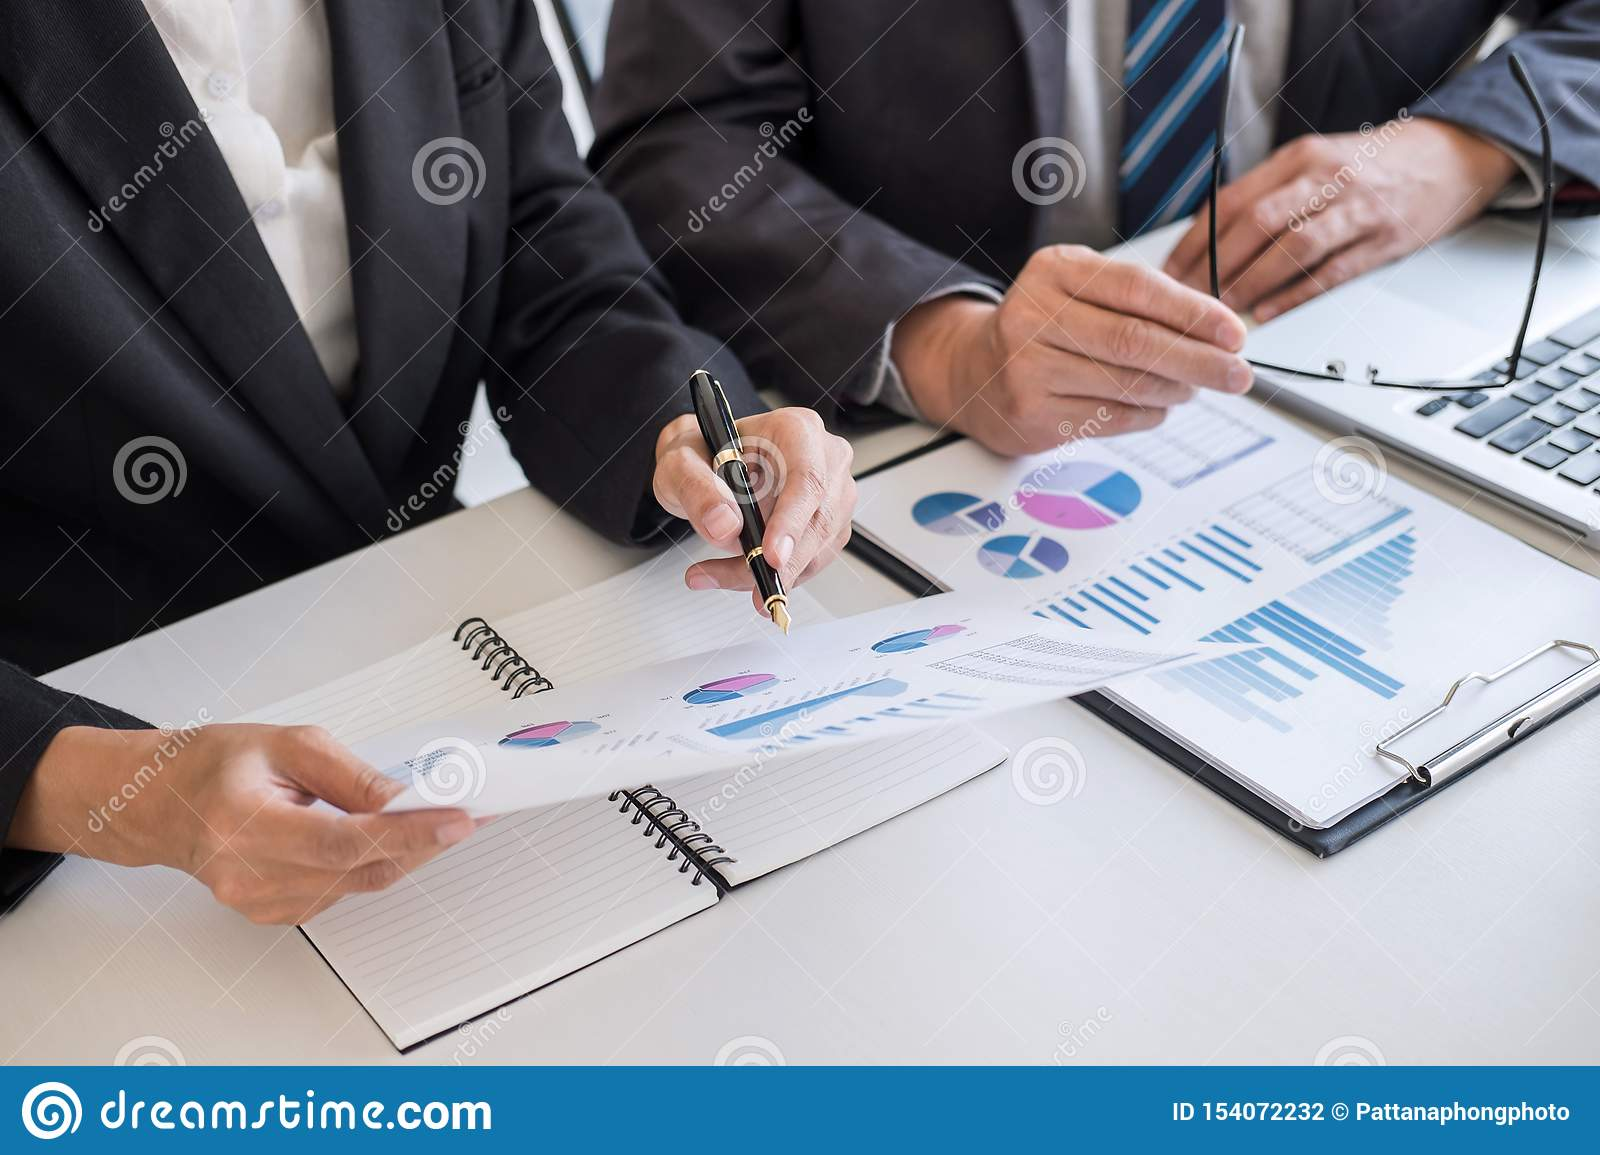 Business team partner meeting working and negotiation analyzing with financial data and marketing growth report graph presentation